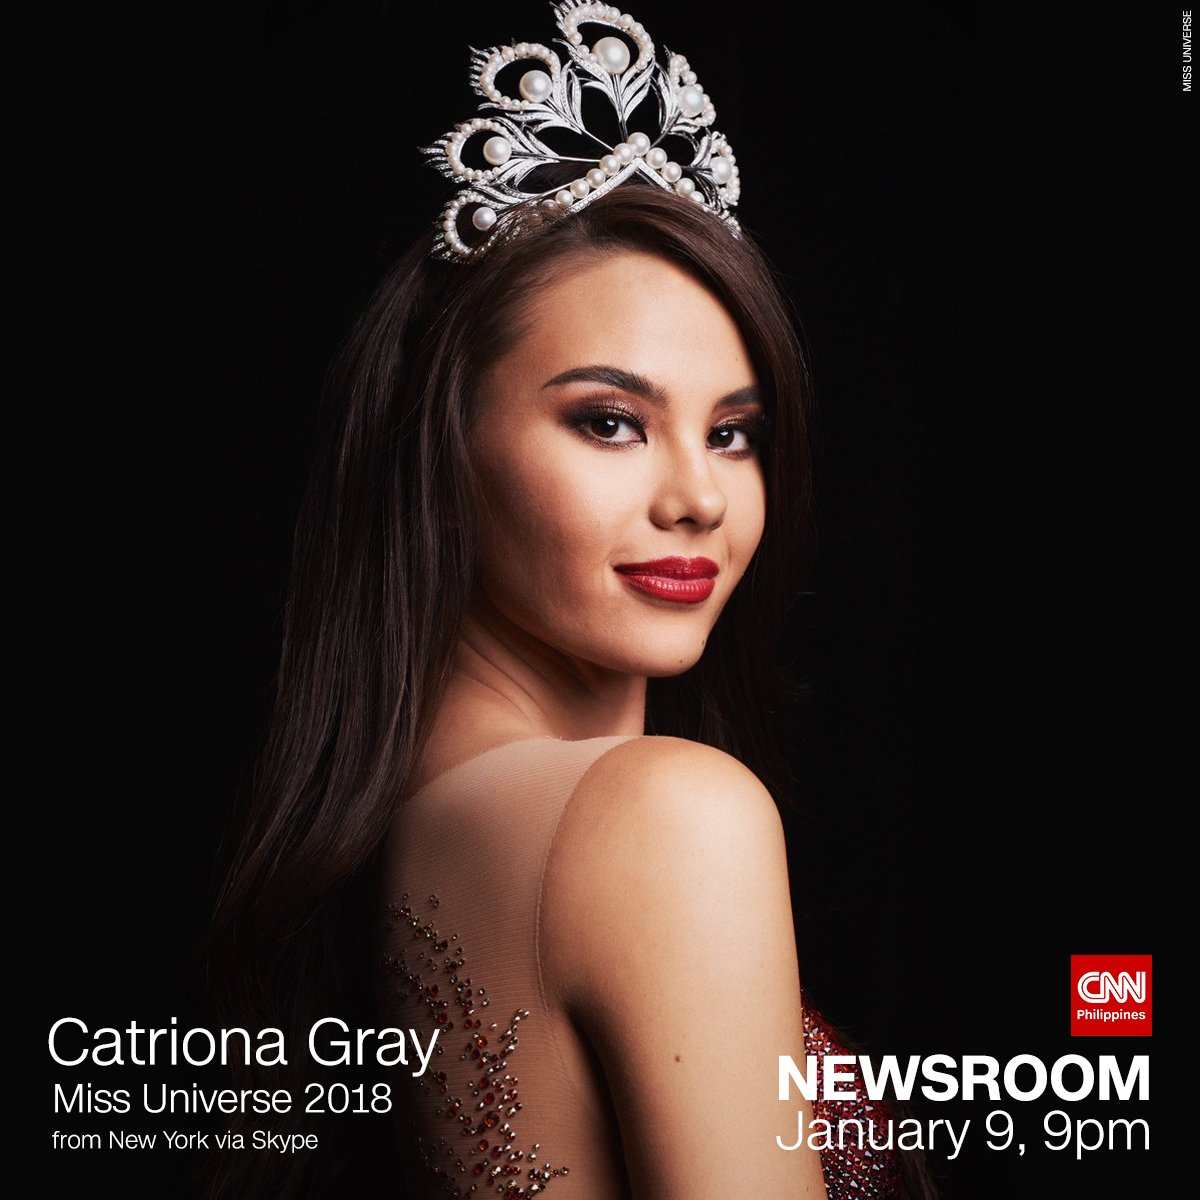 We&#39;ll speak to #MissUniverse  2018 @catrionaelisa to talk about life after winning the crown.  Catch her interview tomorrow on Newsroom at 9pm. <br>http://pic.twitter.com/RVRFKz0onO